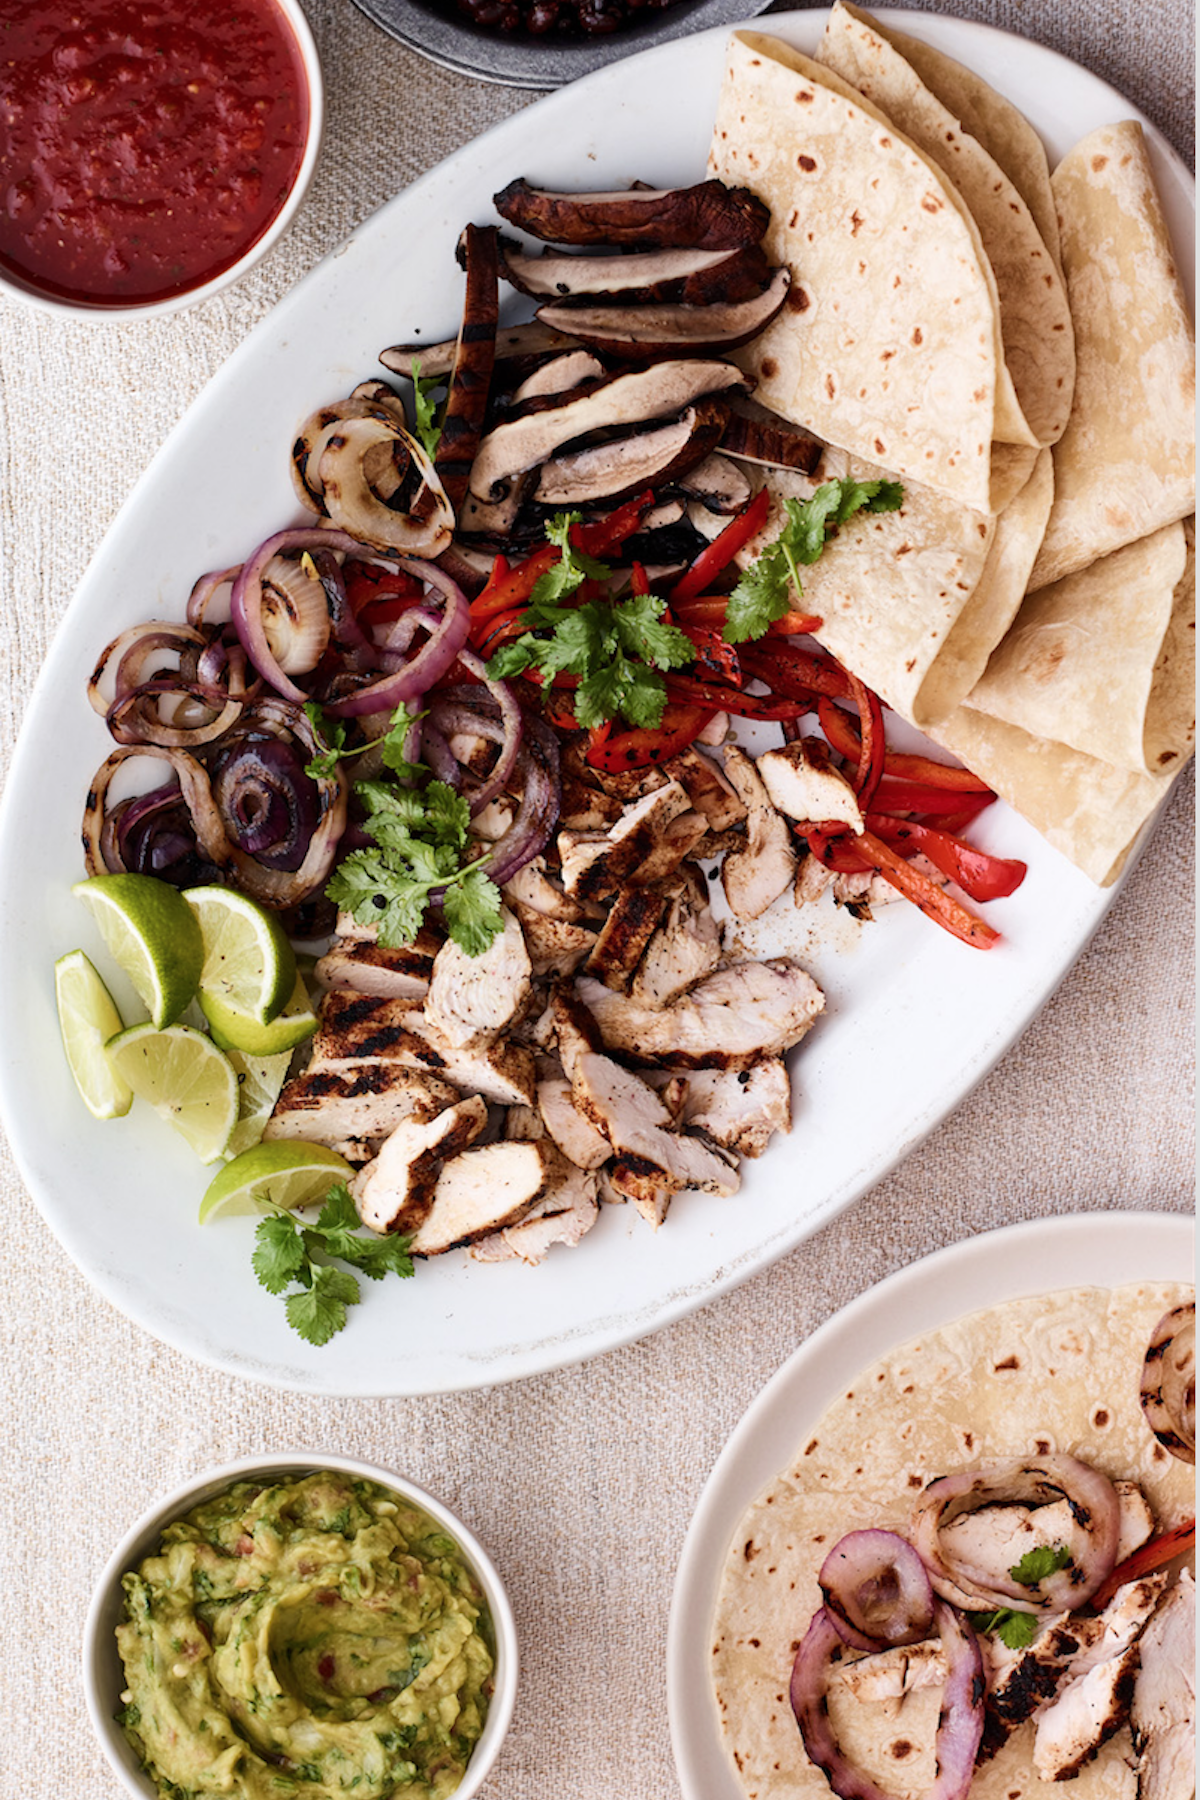 Build Your Own Chicken and Vegetable Fajitas